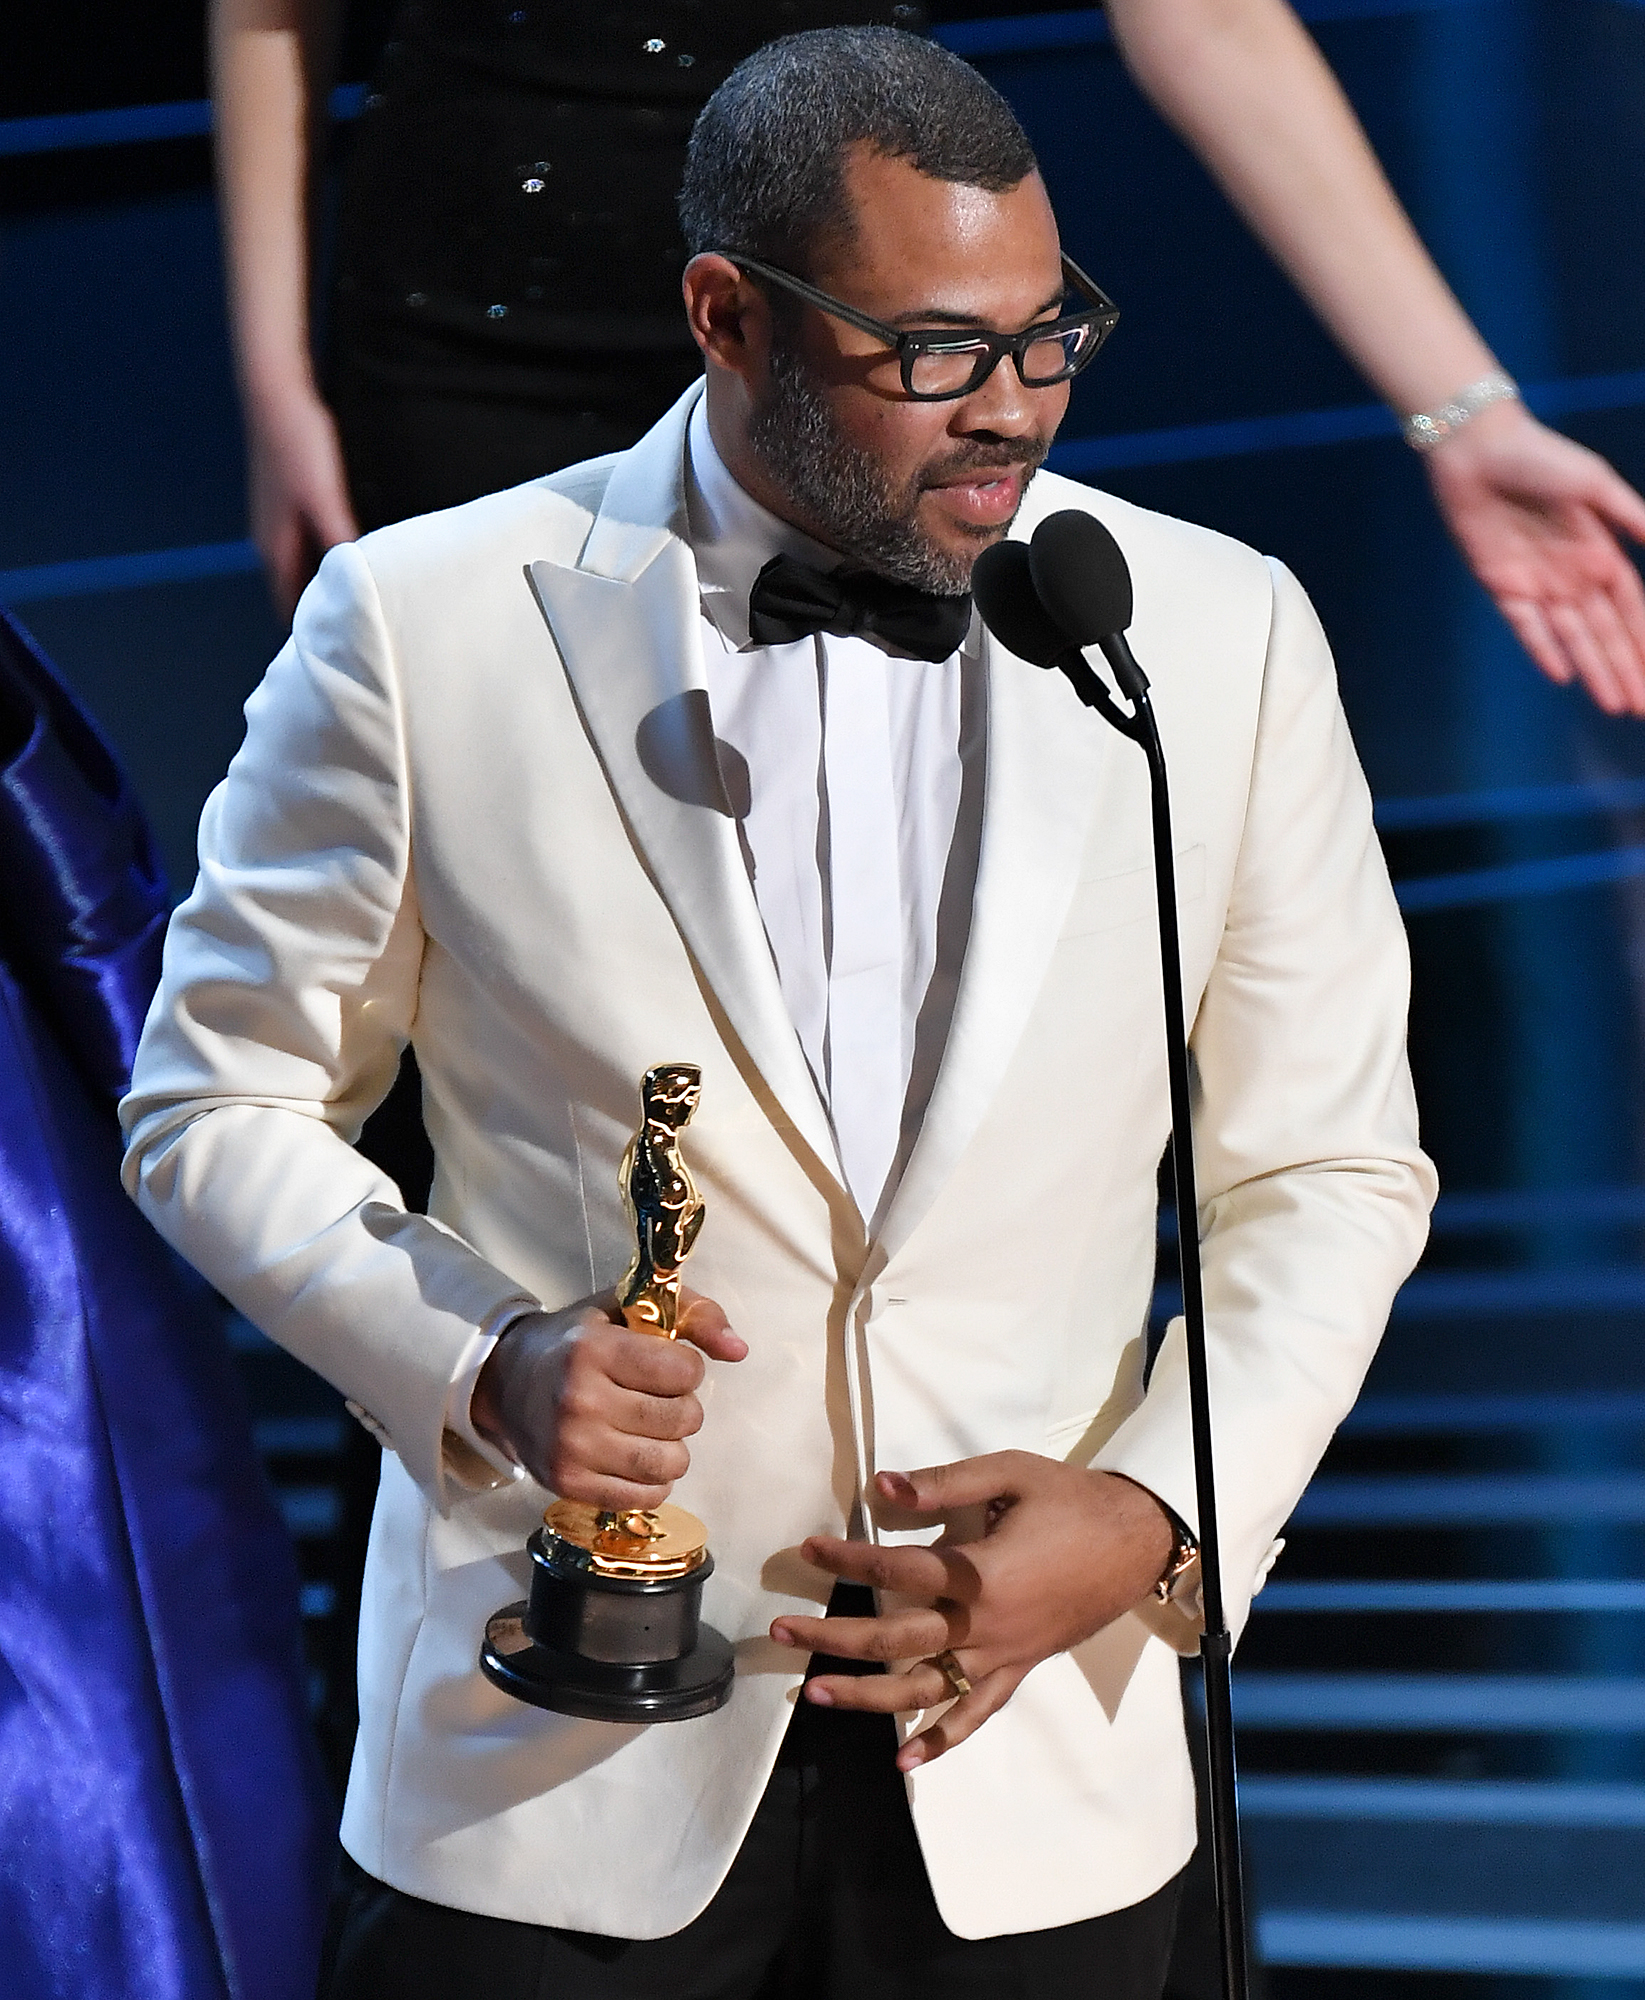 Jordan Peele Had His Oscar Displayed Across from the Get Out Chair